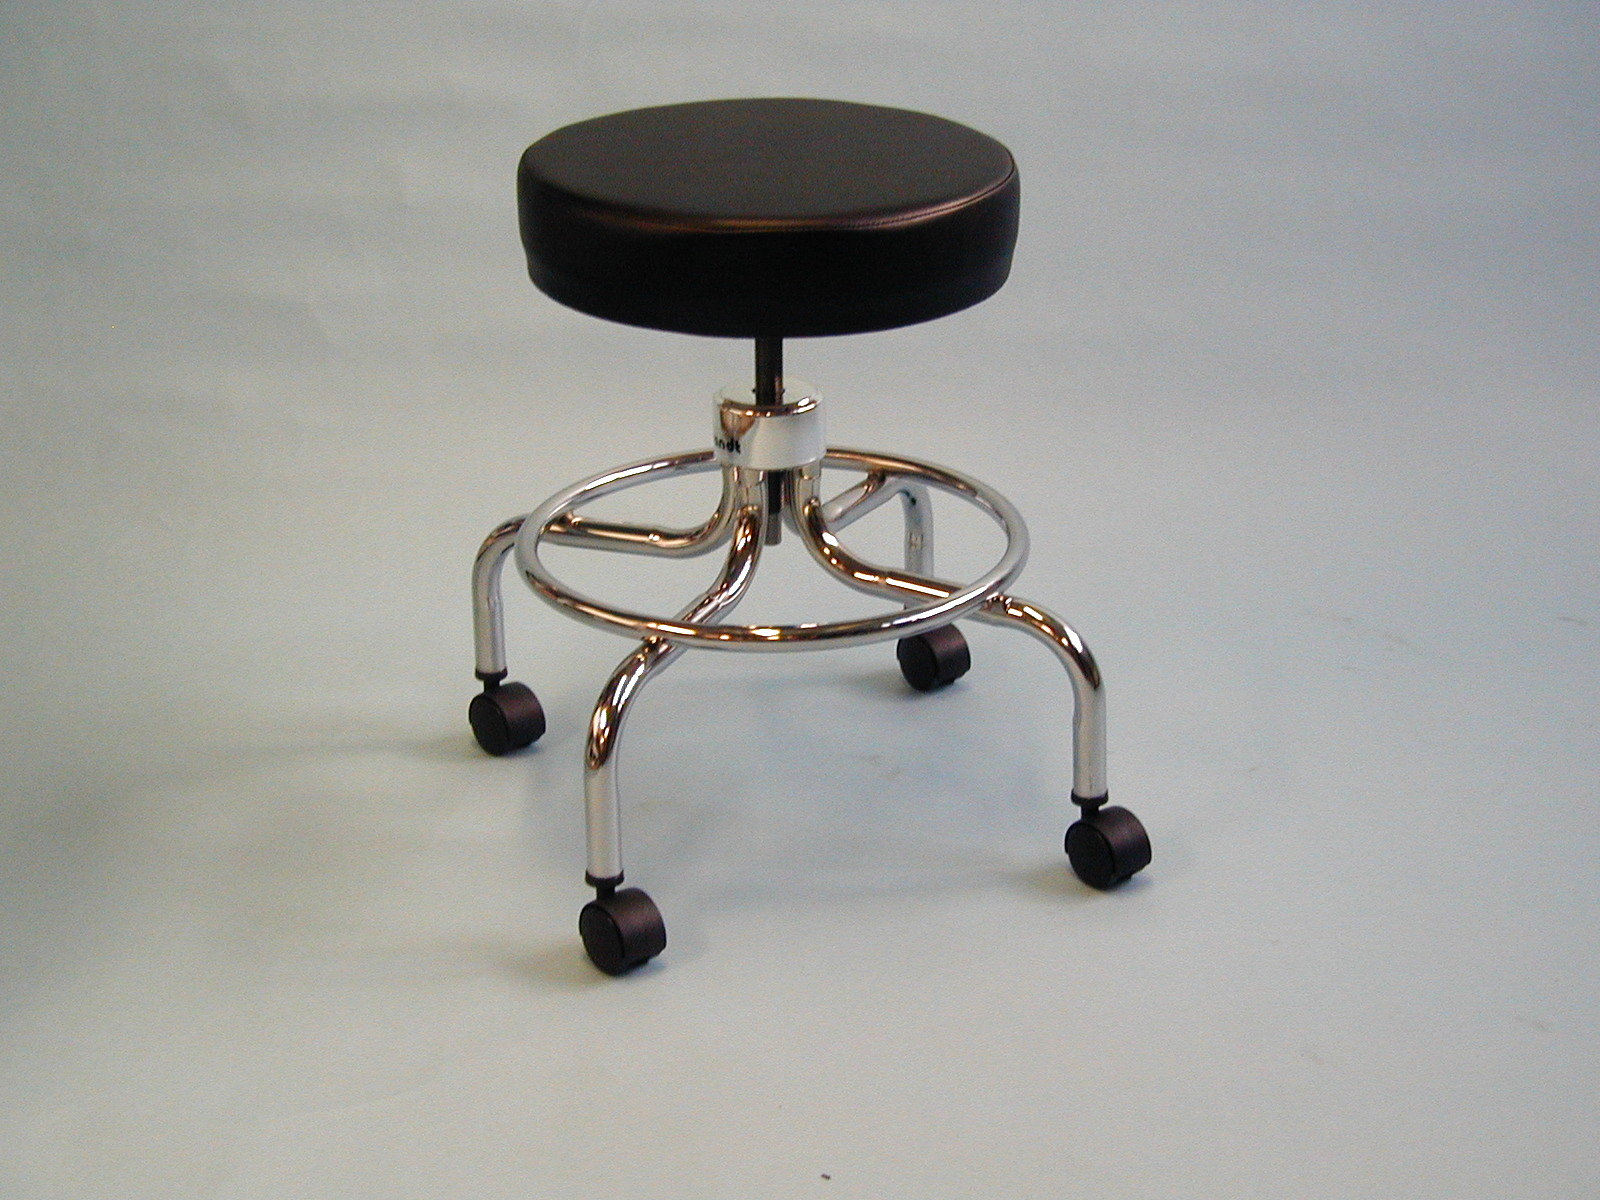 revolving chair for doctor ashley table and chairs brandt industries stools stool